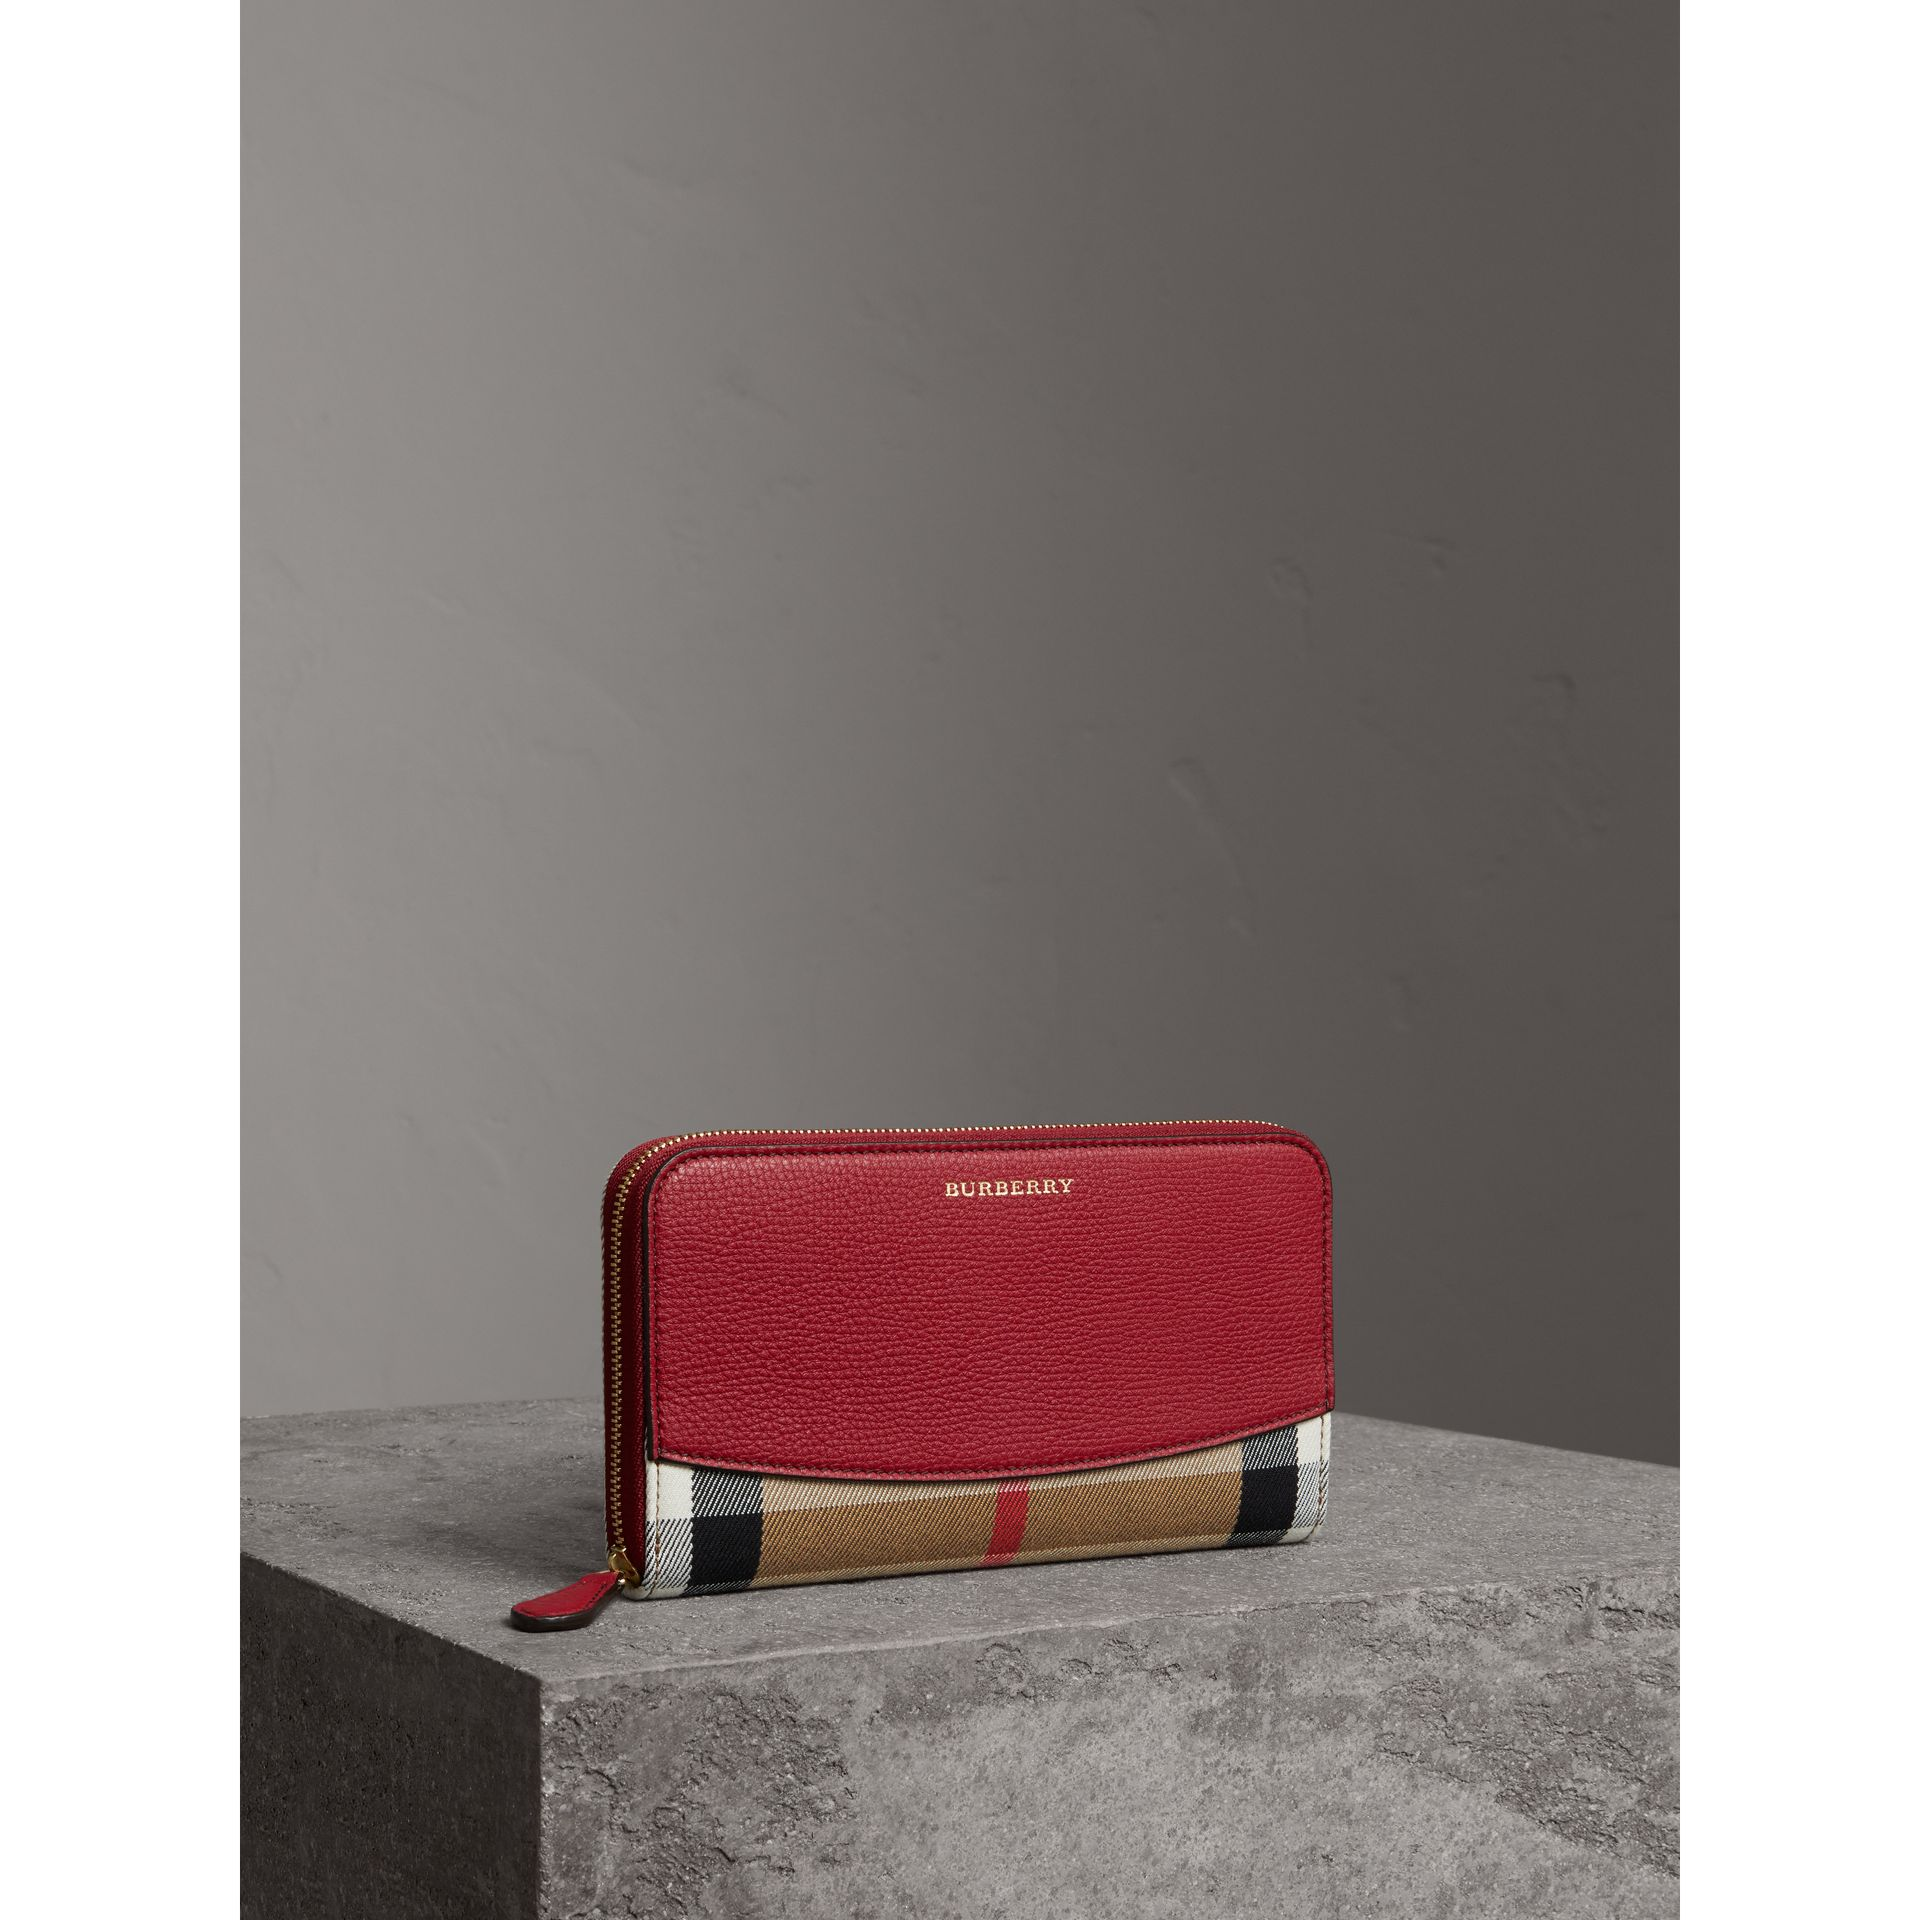 House Check and Leather Ziparound Wallet in Russet Red - Women | Burberry United Kingdom - gallery image 0